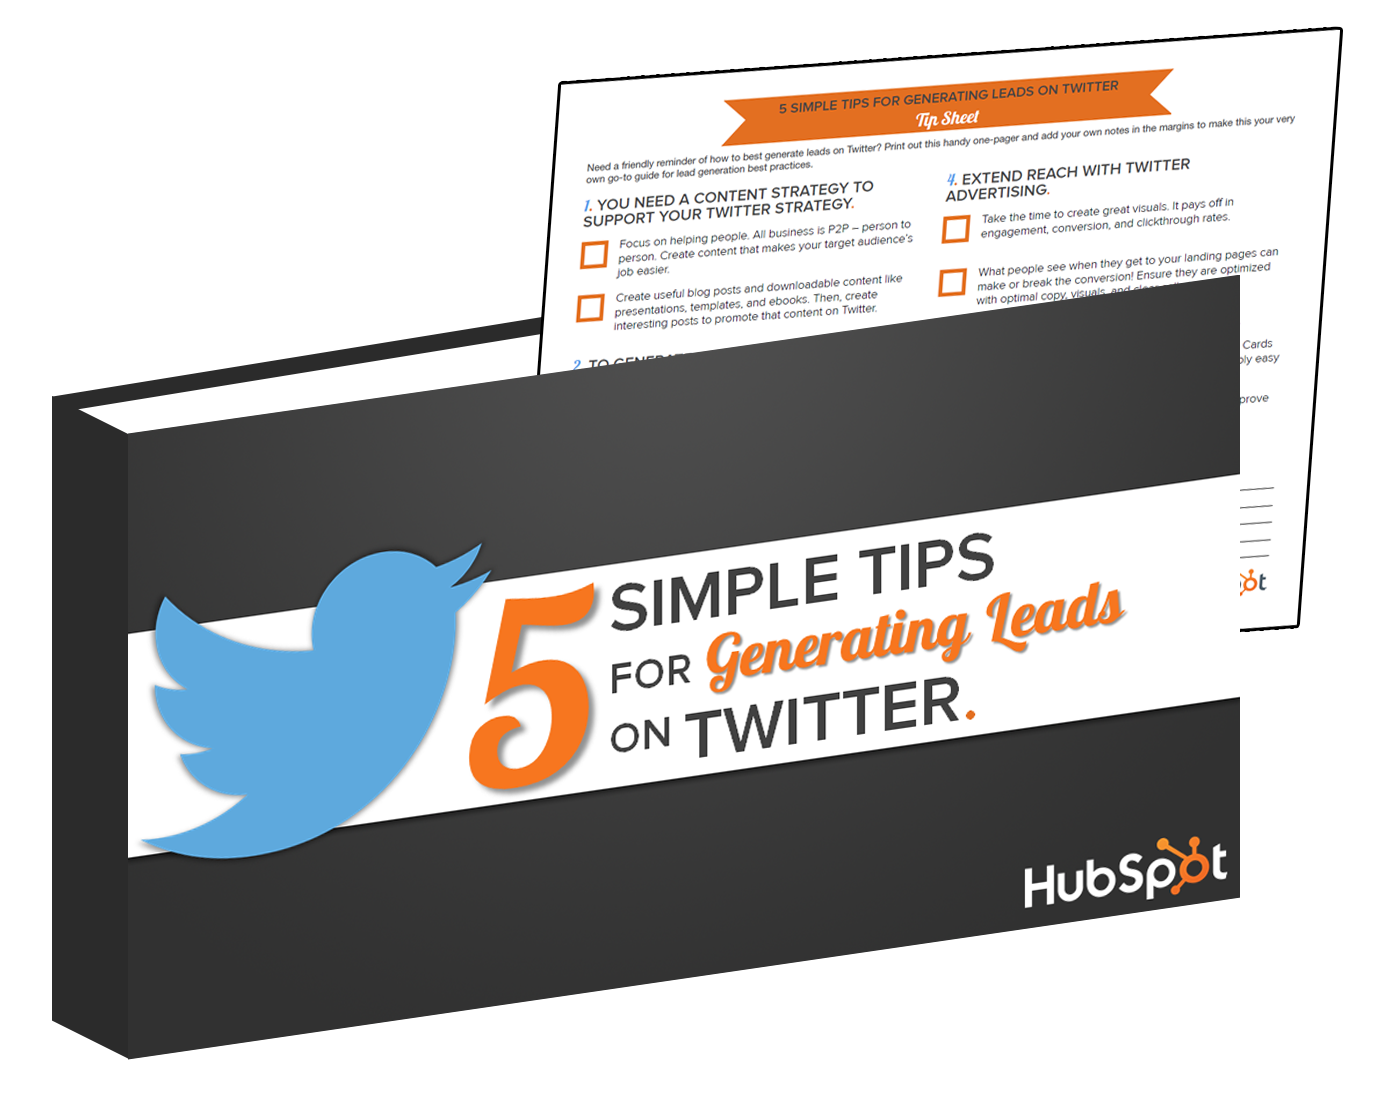 5 Simple Tips for Generating Leads on Twitter